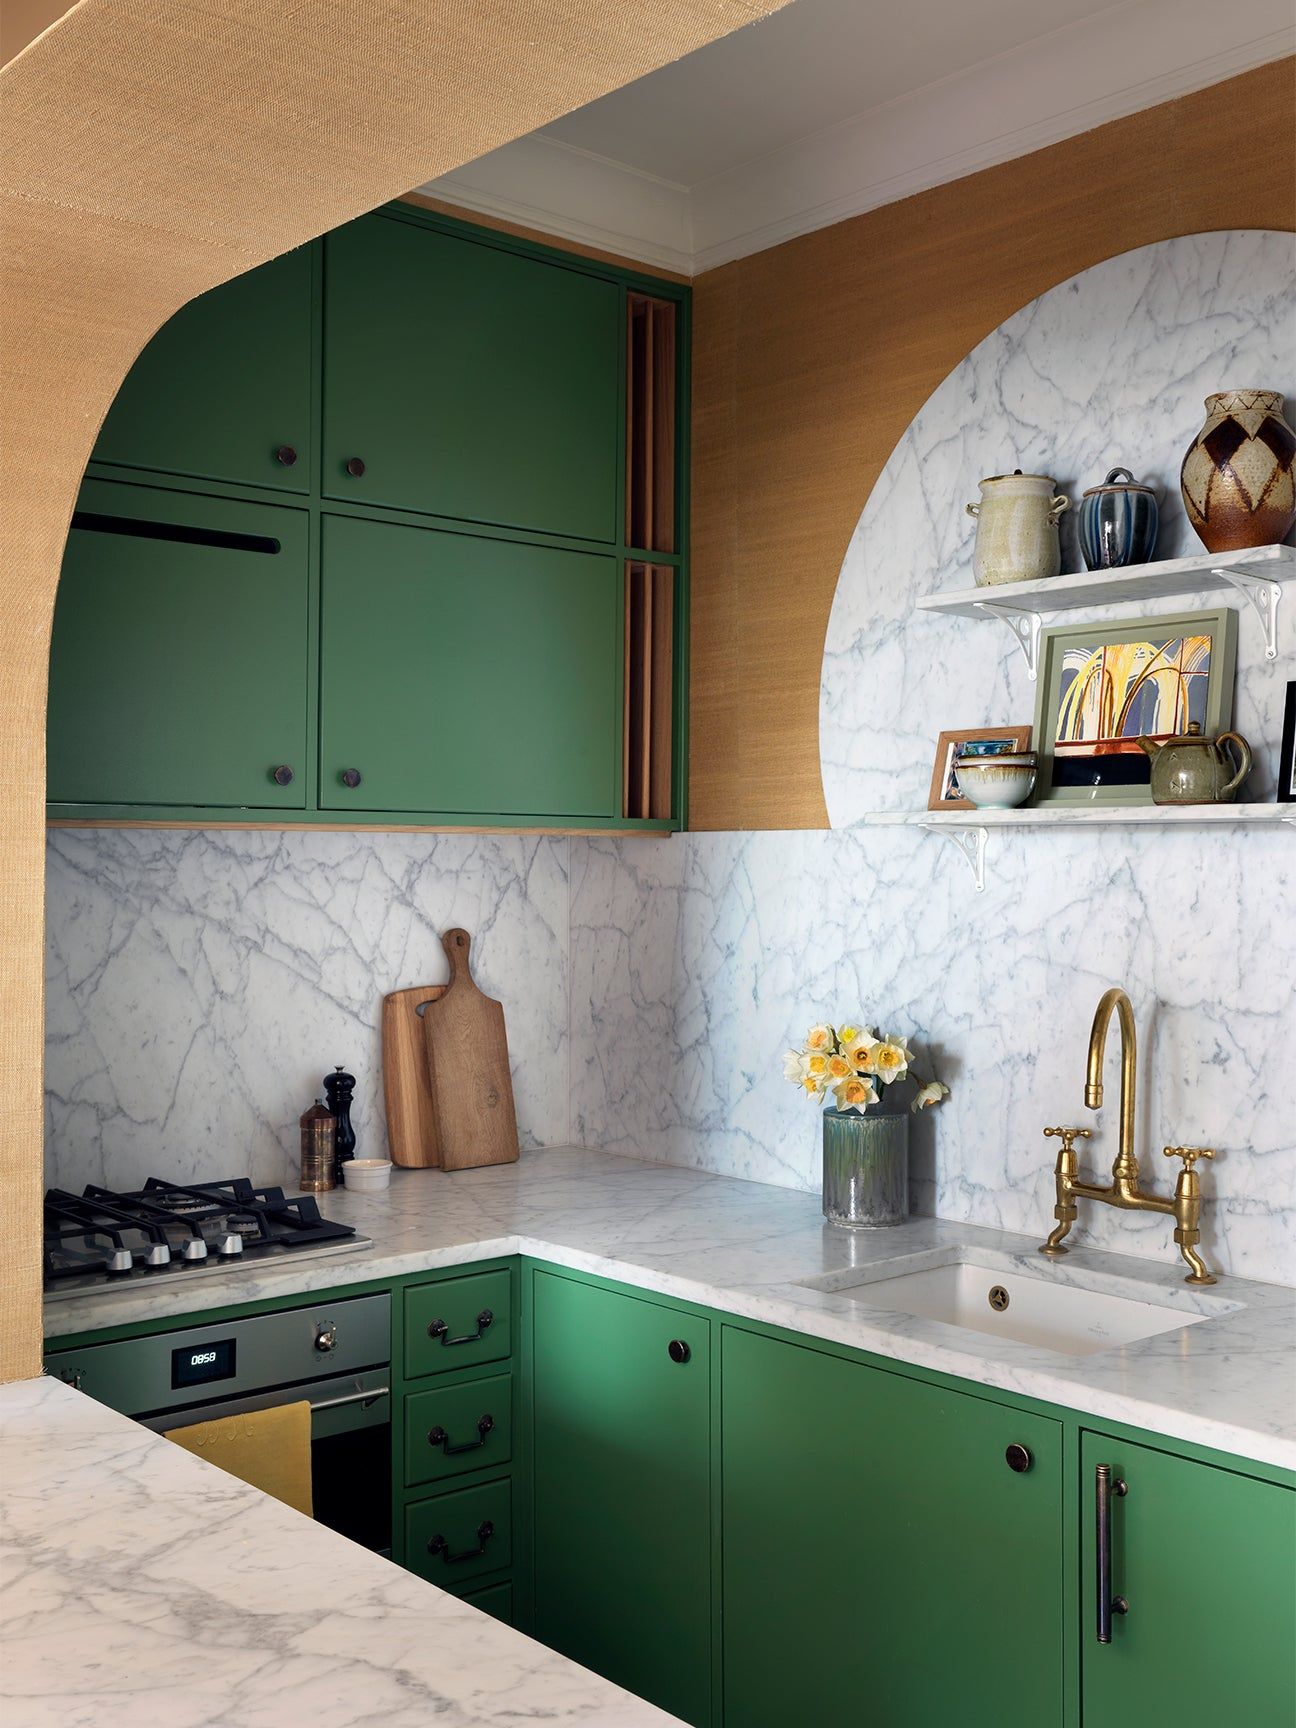 Small kitchen with green cabinets